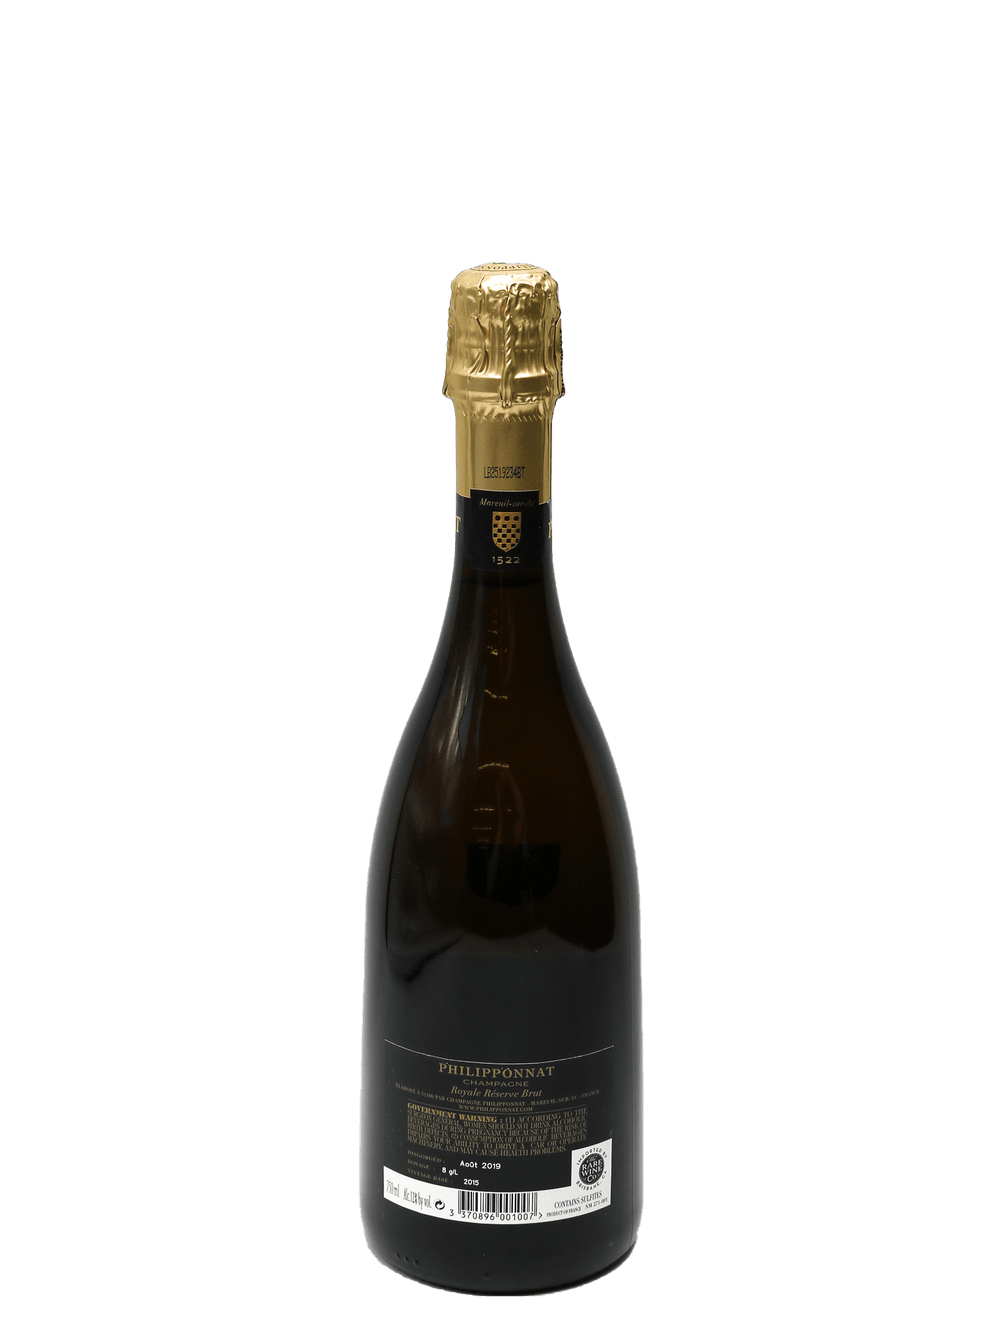 NV Philipponnat Royal Reserve Brut